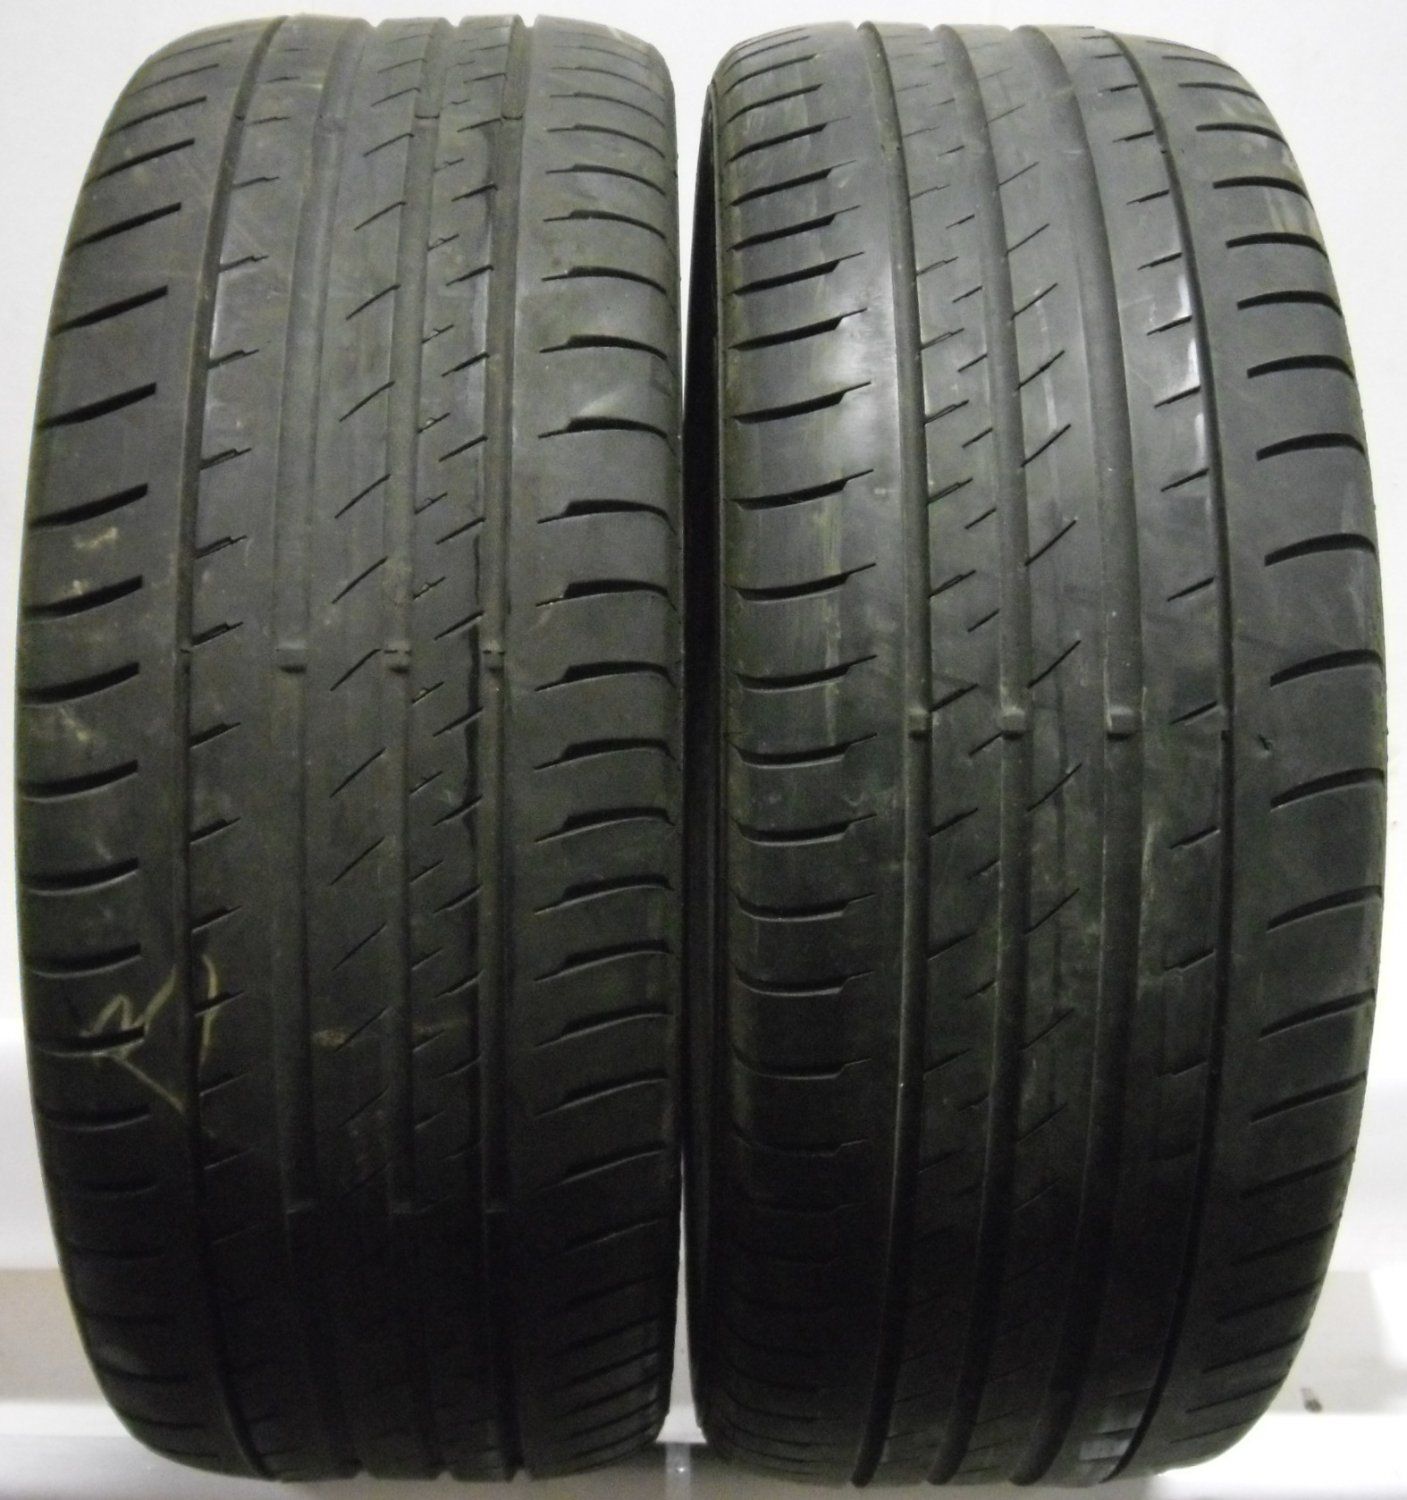 2 2354518 continental 235 45 18 conti sport contact 3 part worn used tyres x2. Black Bedroom Furniture Sets. Home Design Ideas